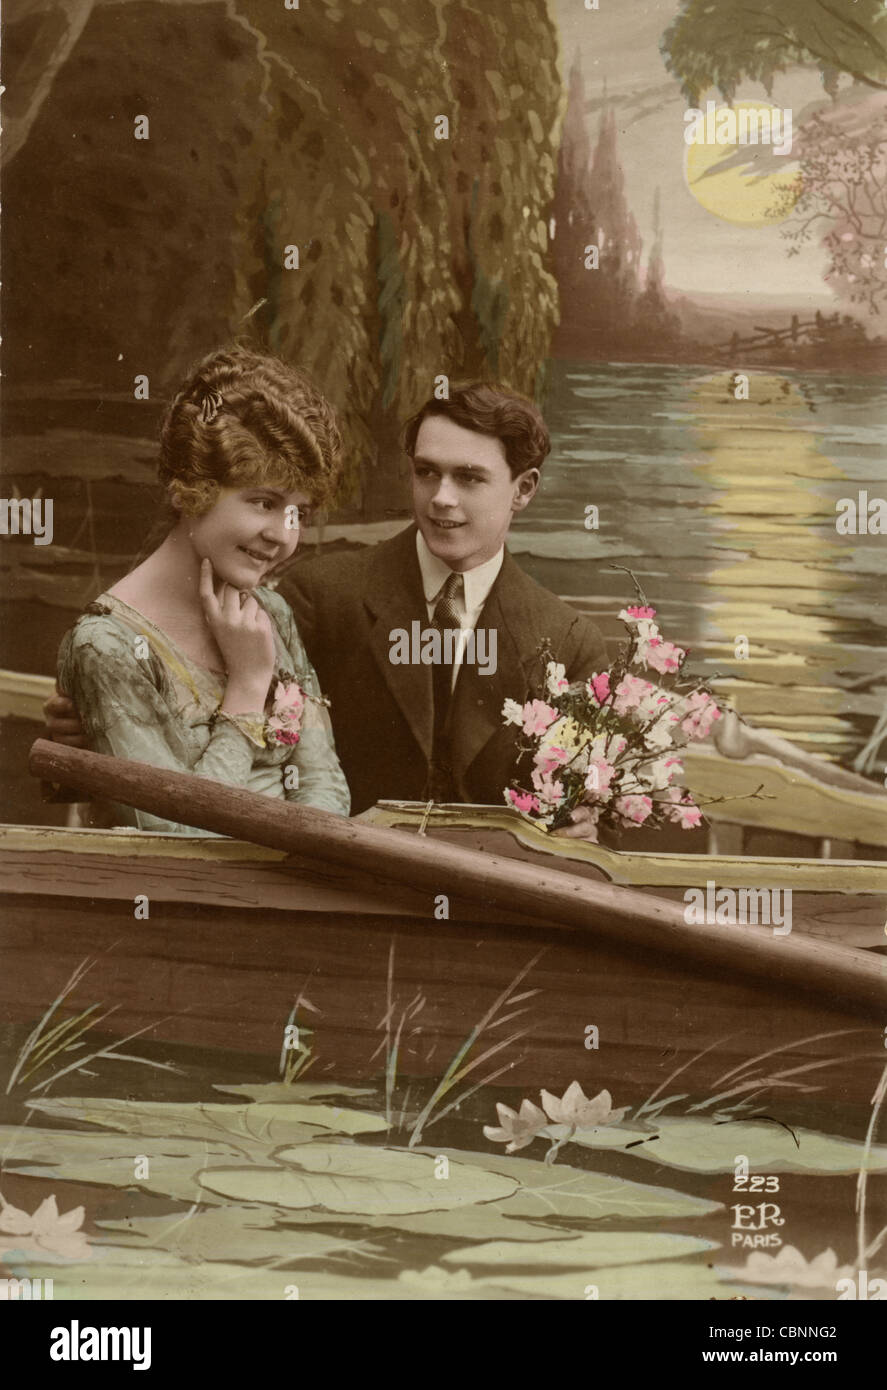 Lovers in Rowboat Pondering Question - Stock Image